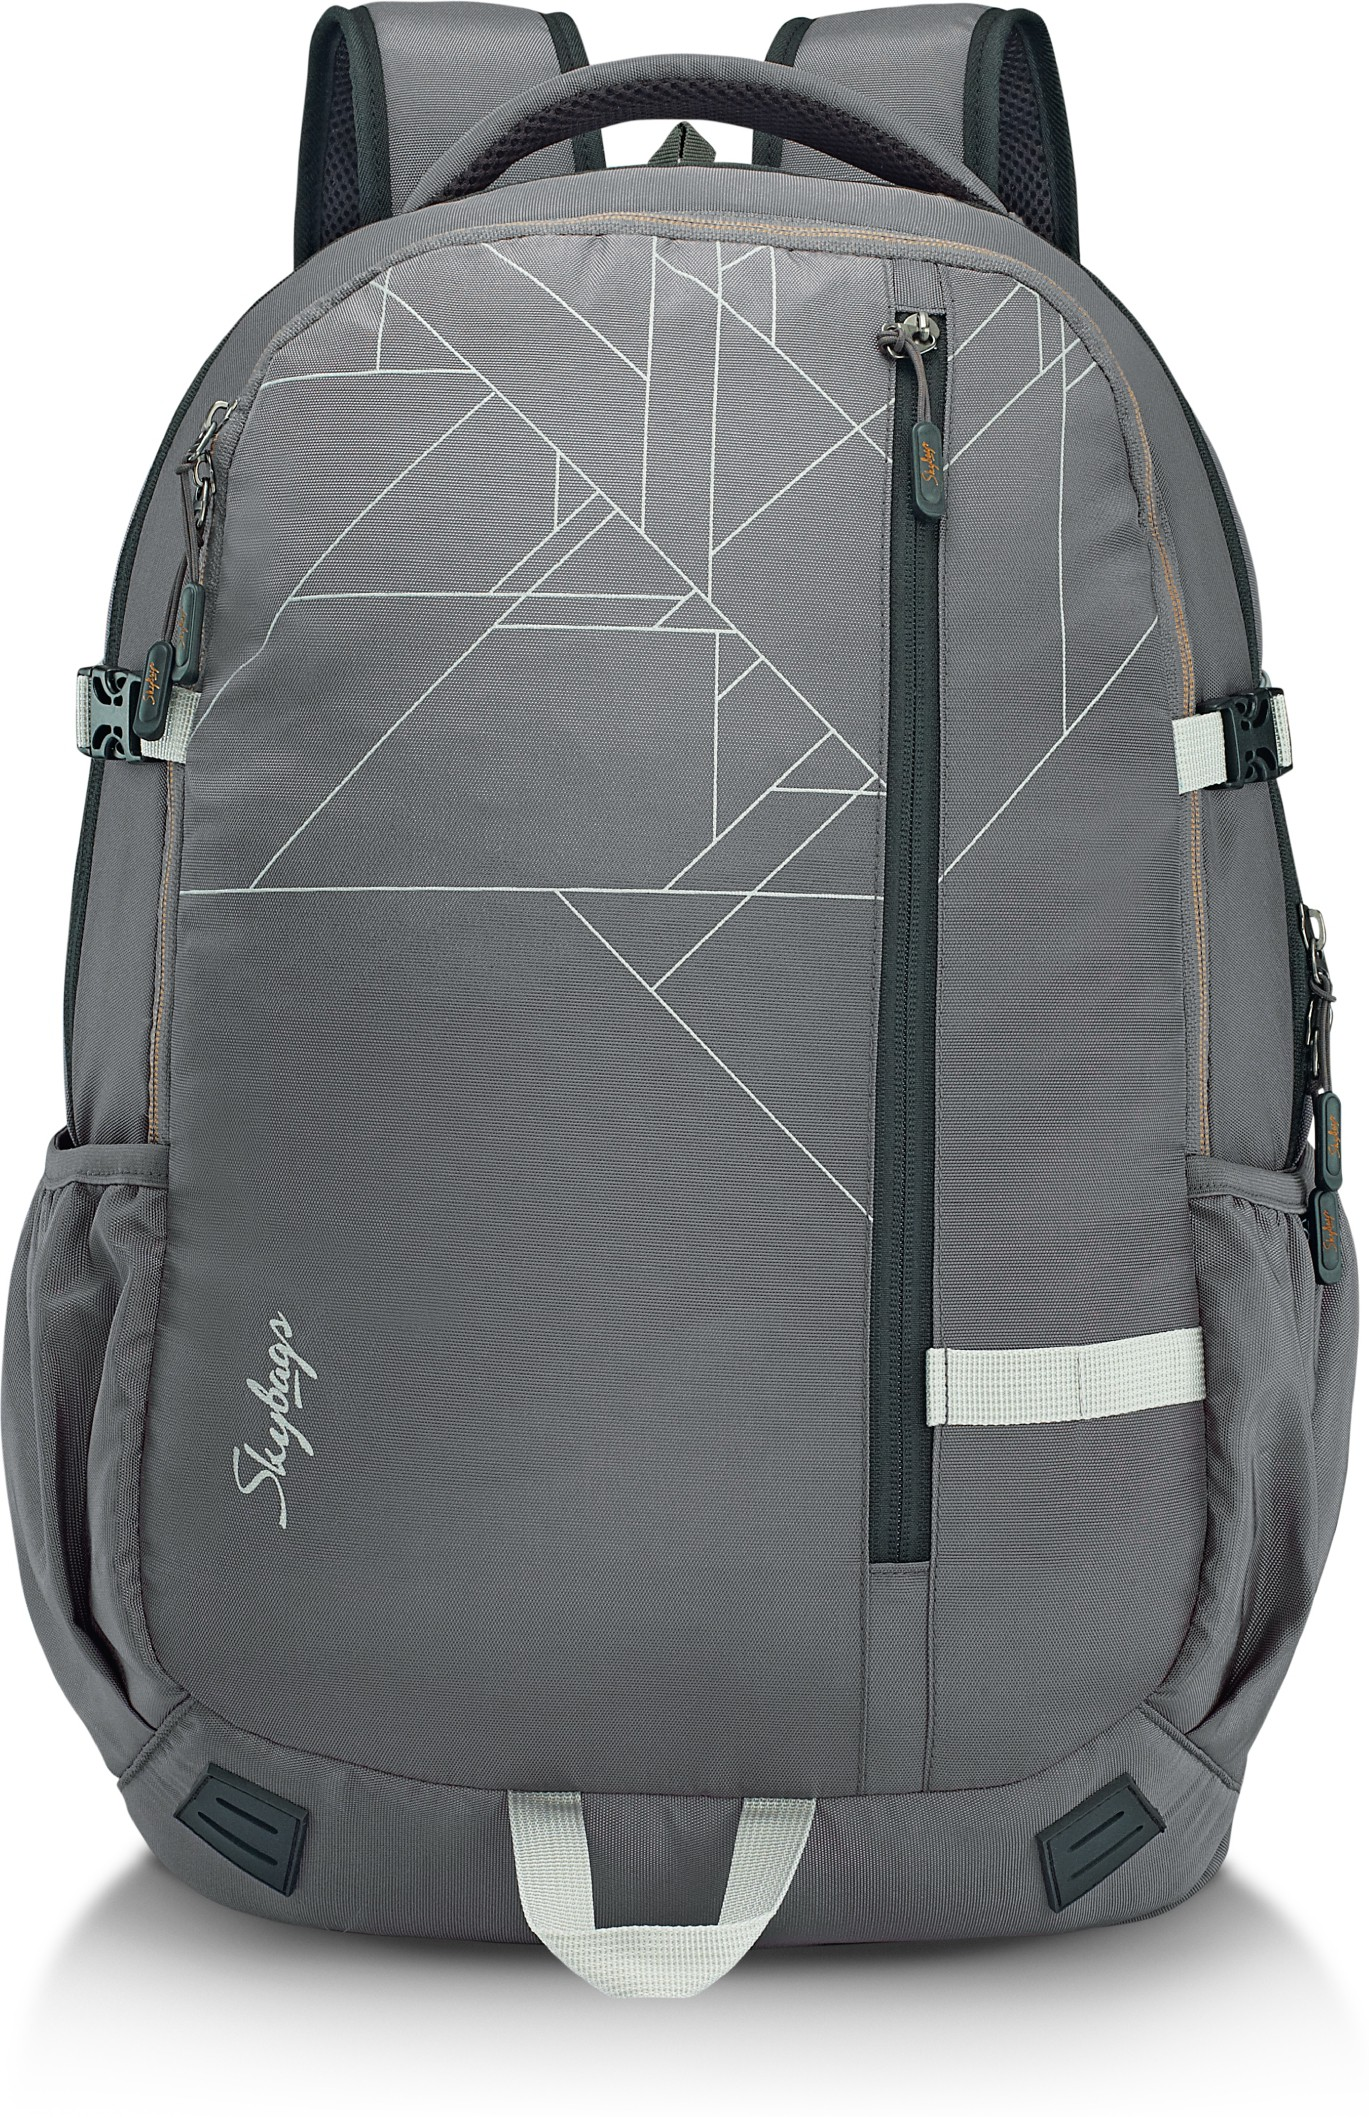 fb3f7297cea Skybags Teckie 01 Laptop Backpack Grey 42 L Laptop Backpack (Grey)